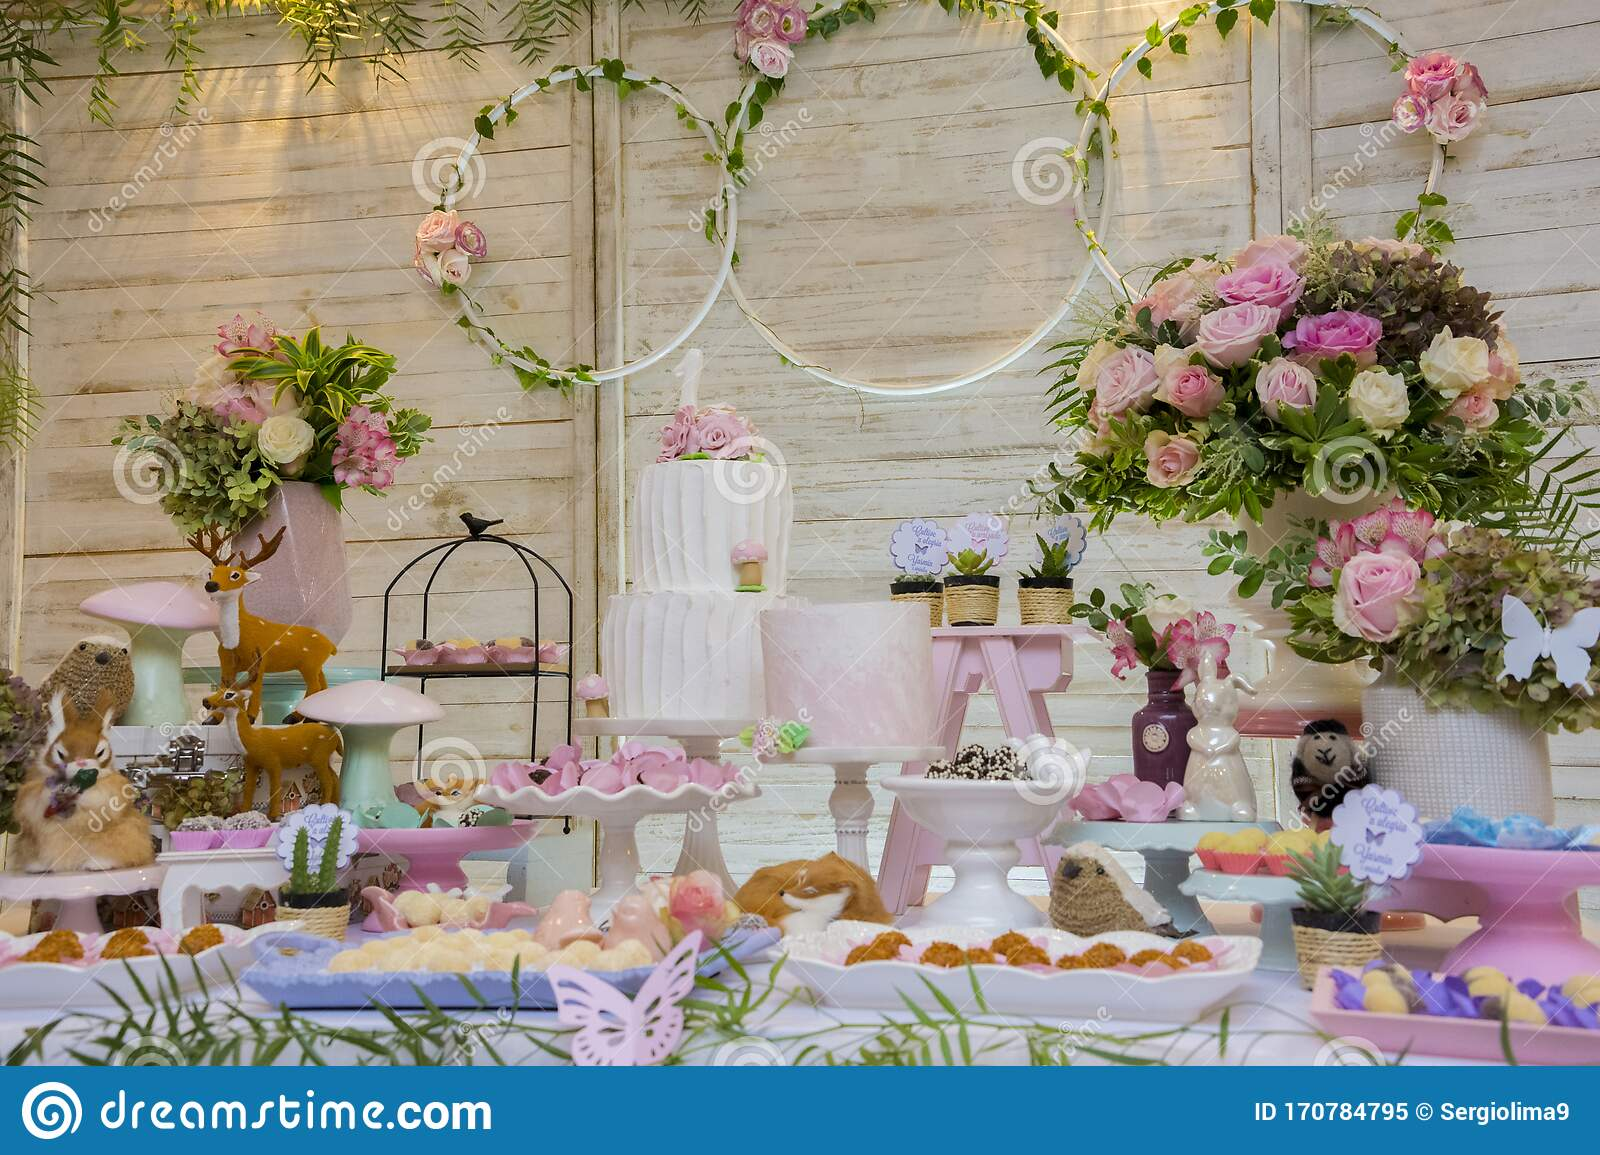 Strange Luxurious Table Of Sweets And Birthday Cake Stock Image Image Of Funny Birthday Cards Online Elaedamsfinfo